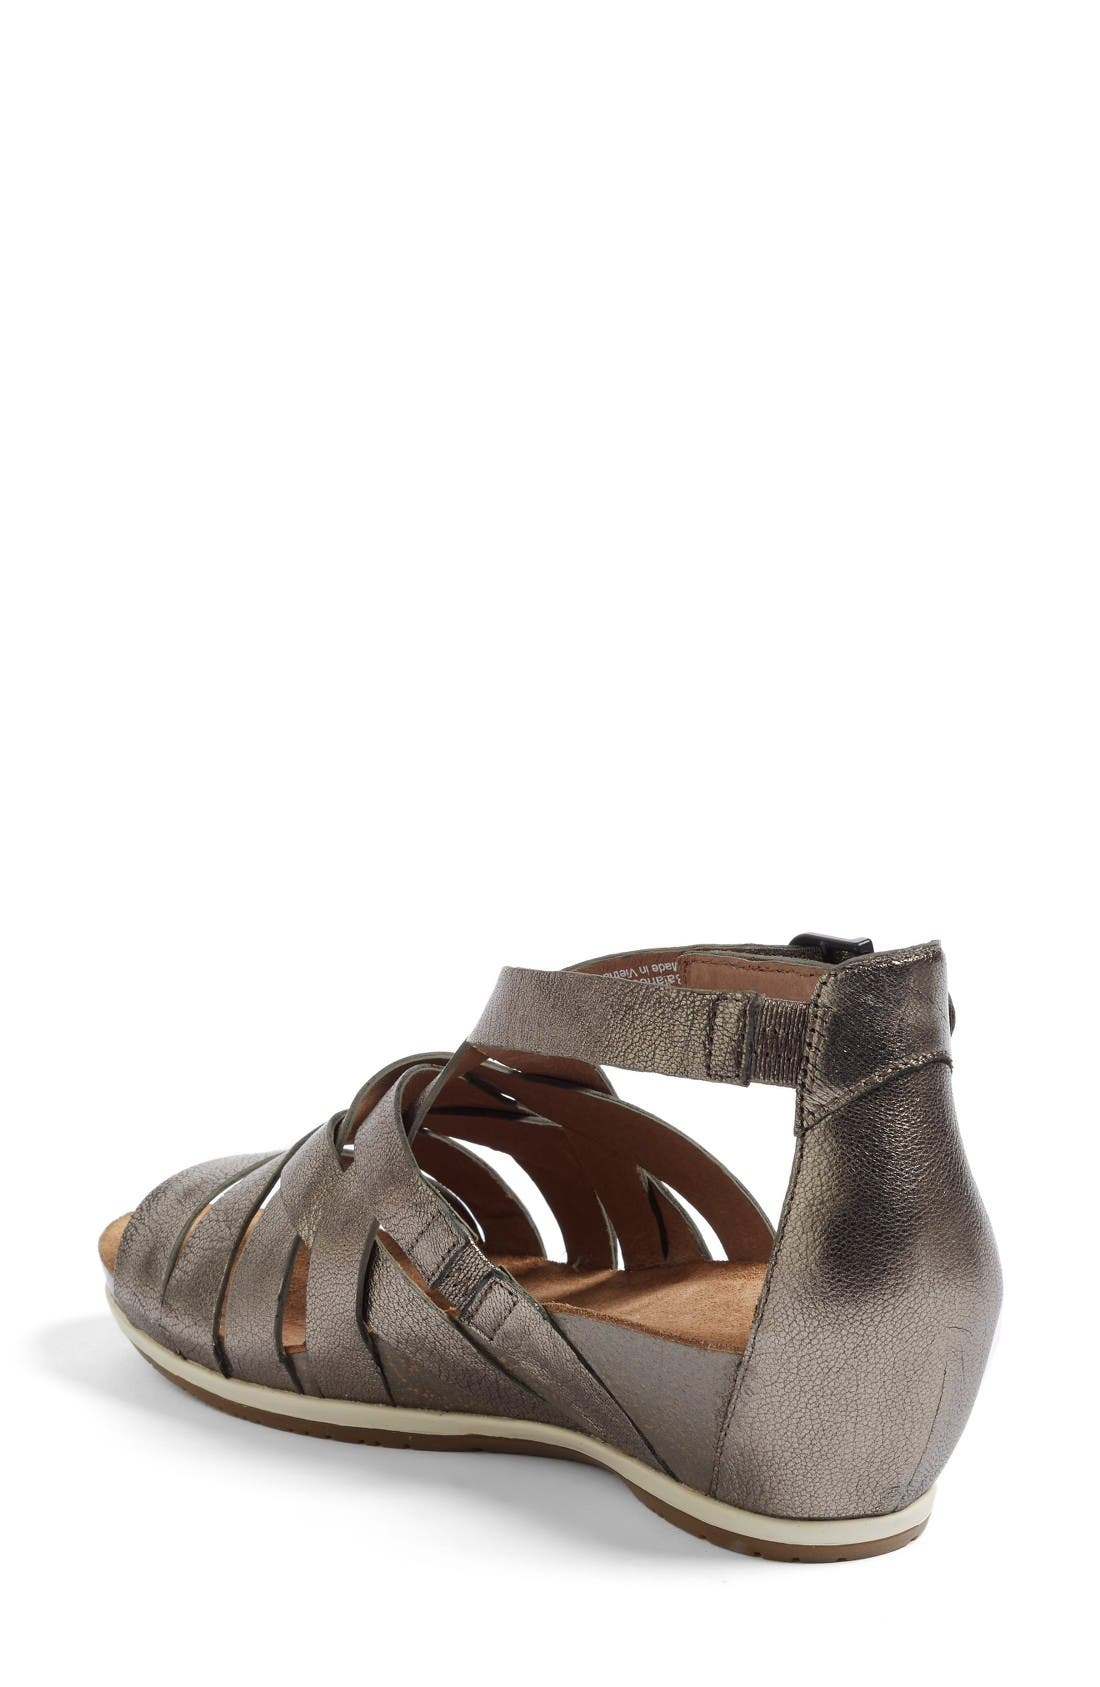 Vivian Gladiator Sandal,                             Alternate thumbnail 2, color,                             Pewter Leather